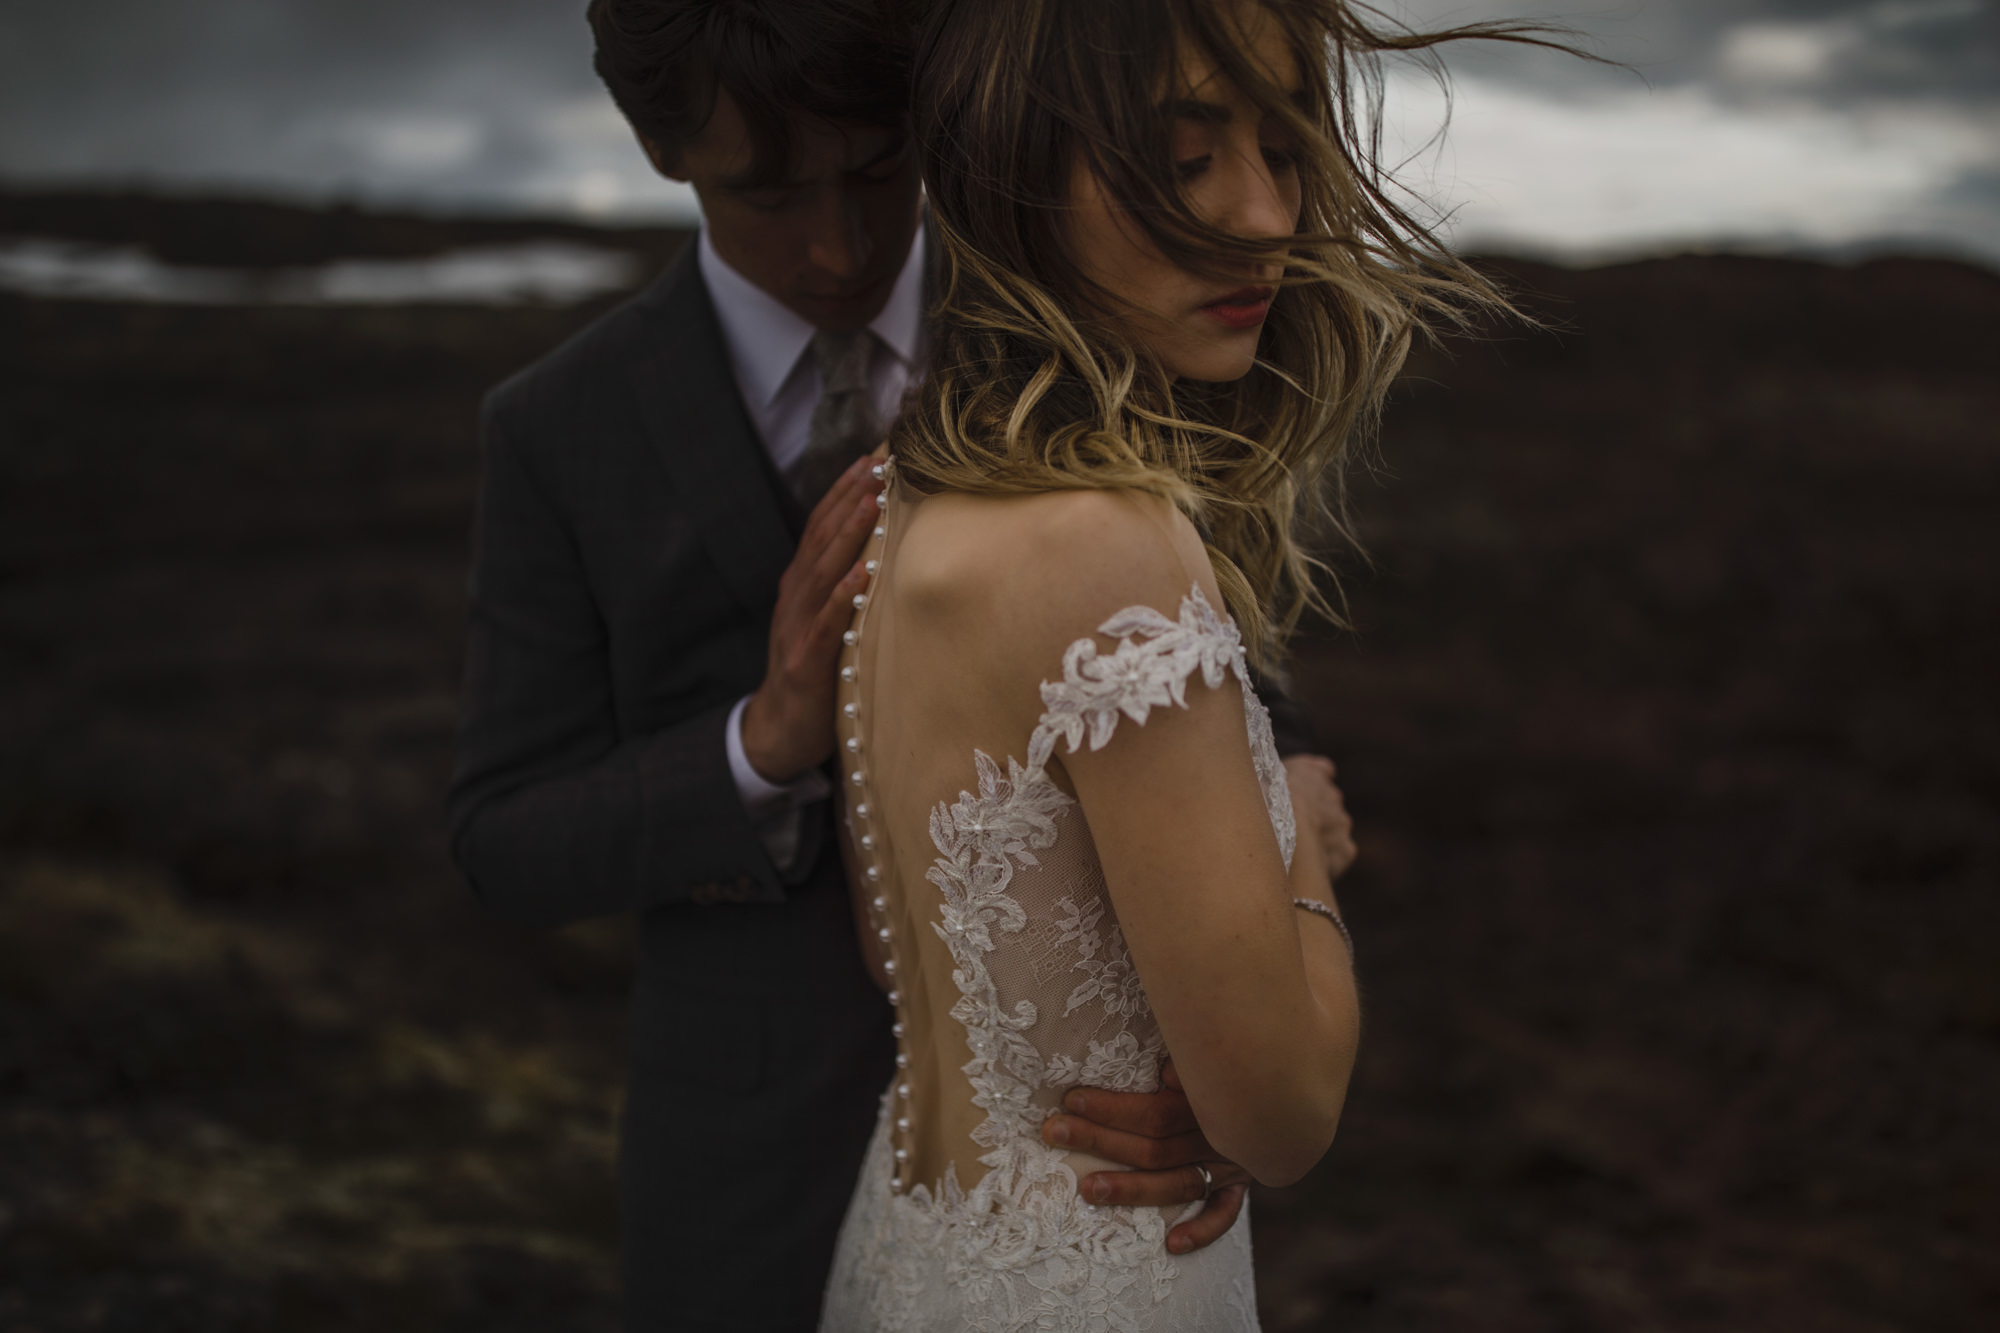 Couple portrait of bride in sheer back dress with buttons - photo by McClintock Photography Agency